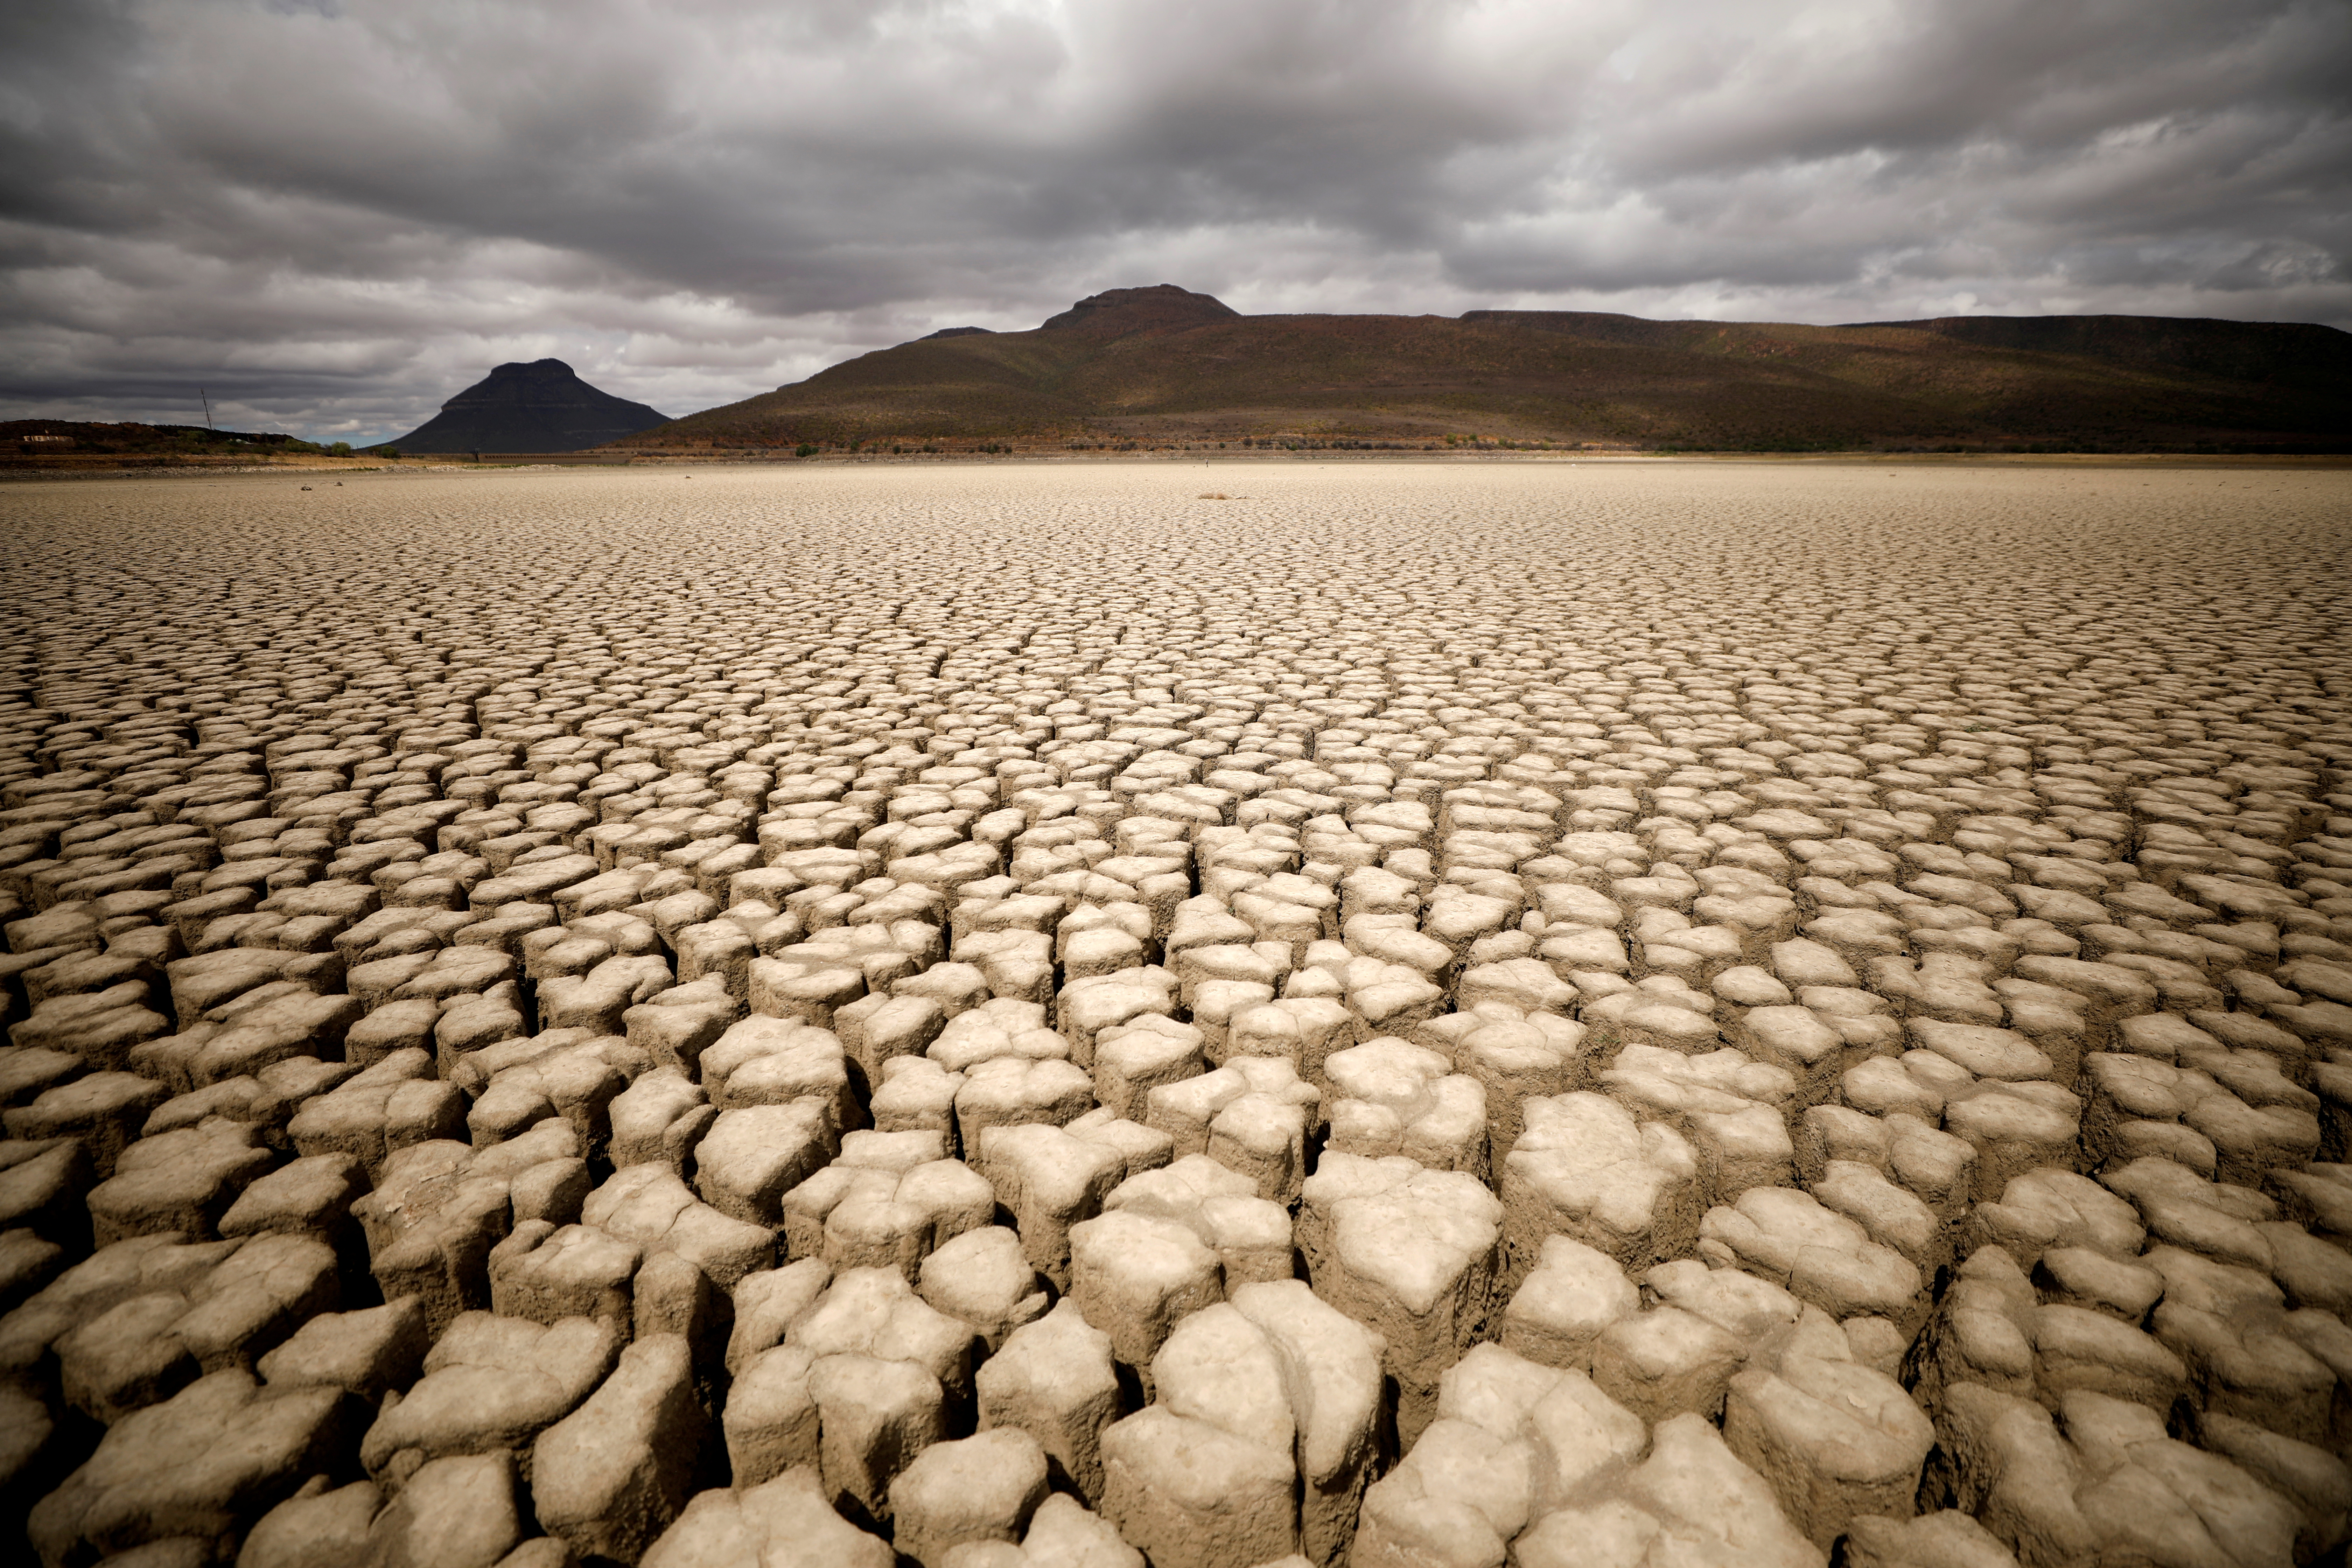 Clouds gather but produce no rain as cracks are seen in the dried up municipal dam in drought-stricken Graaff-Reinet, South Africa, November 14, 2019. REUTERS/Mike Hutchings/File Photo